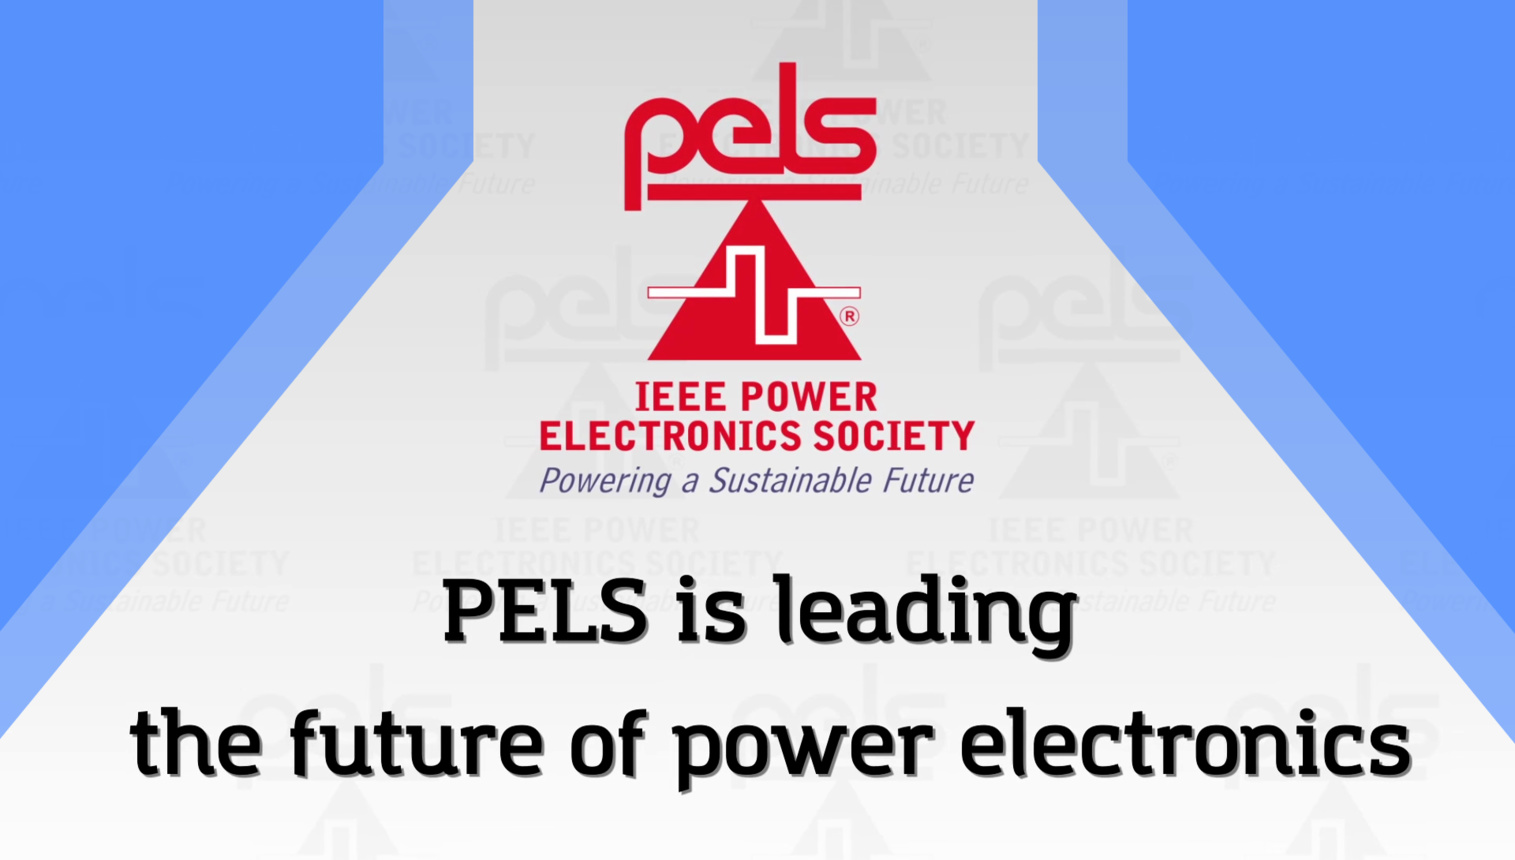 PELS: Leading the Future of Power Electronics